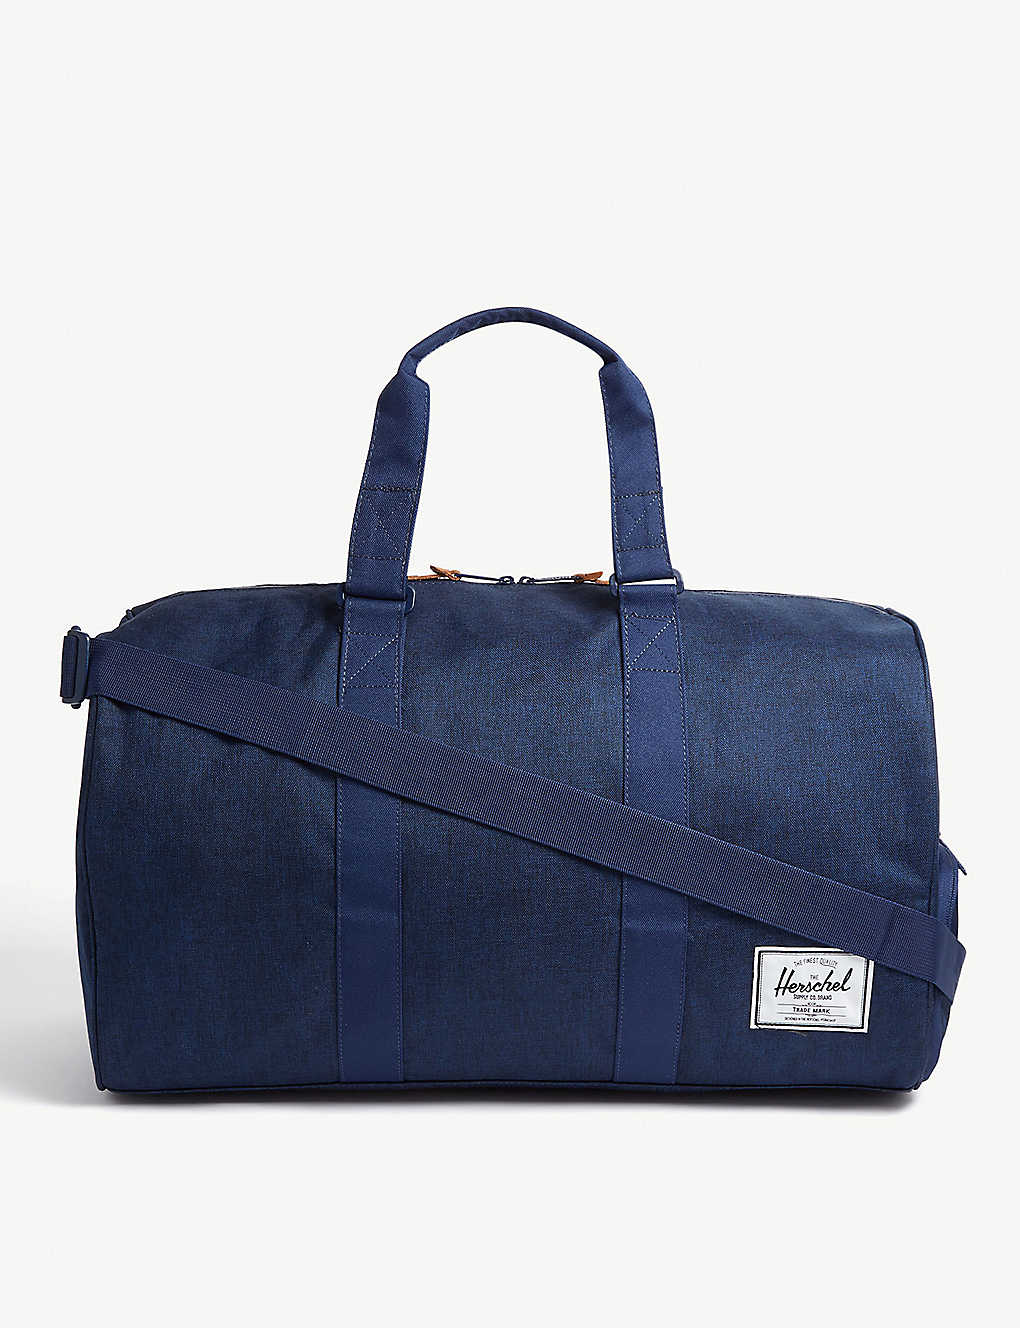 ce3d4af1e HERSCHEL SUPPLY CO - Novel duffle bag | Selfridges.com